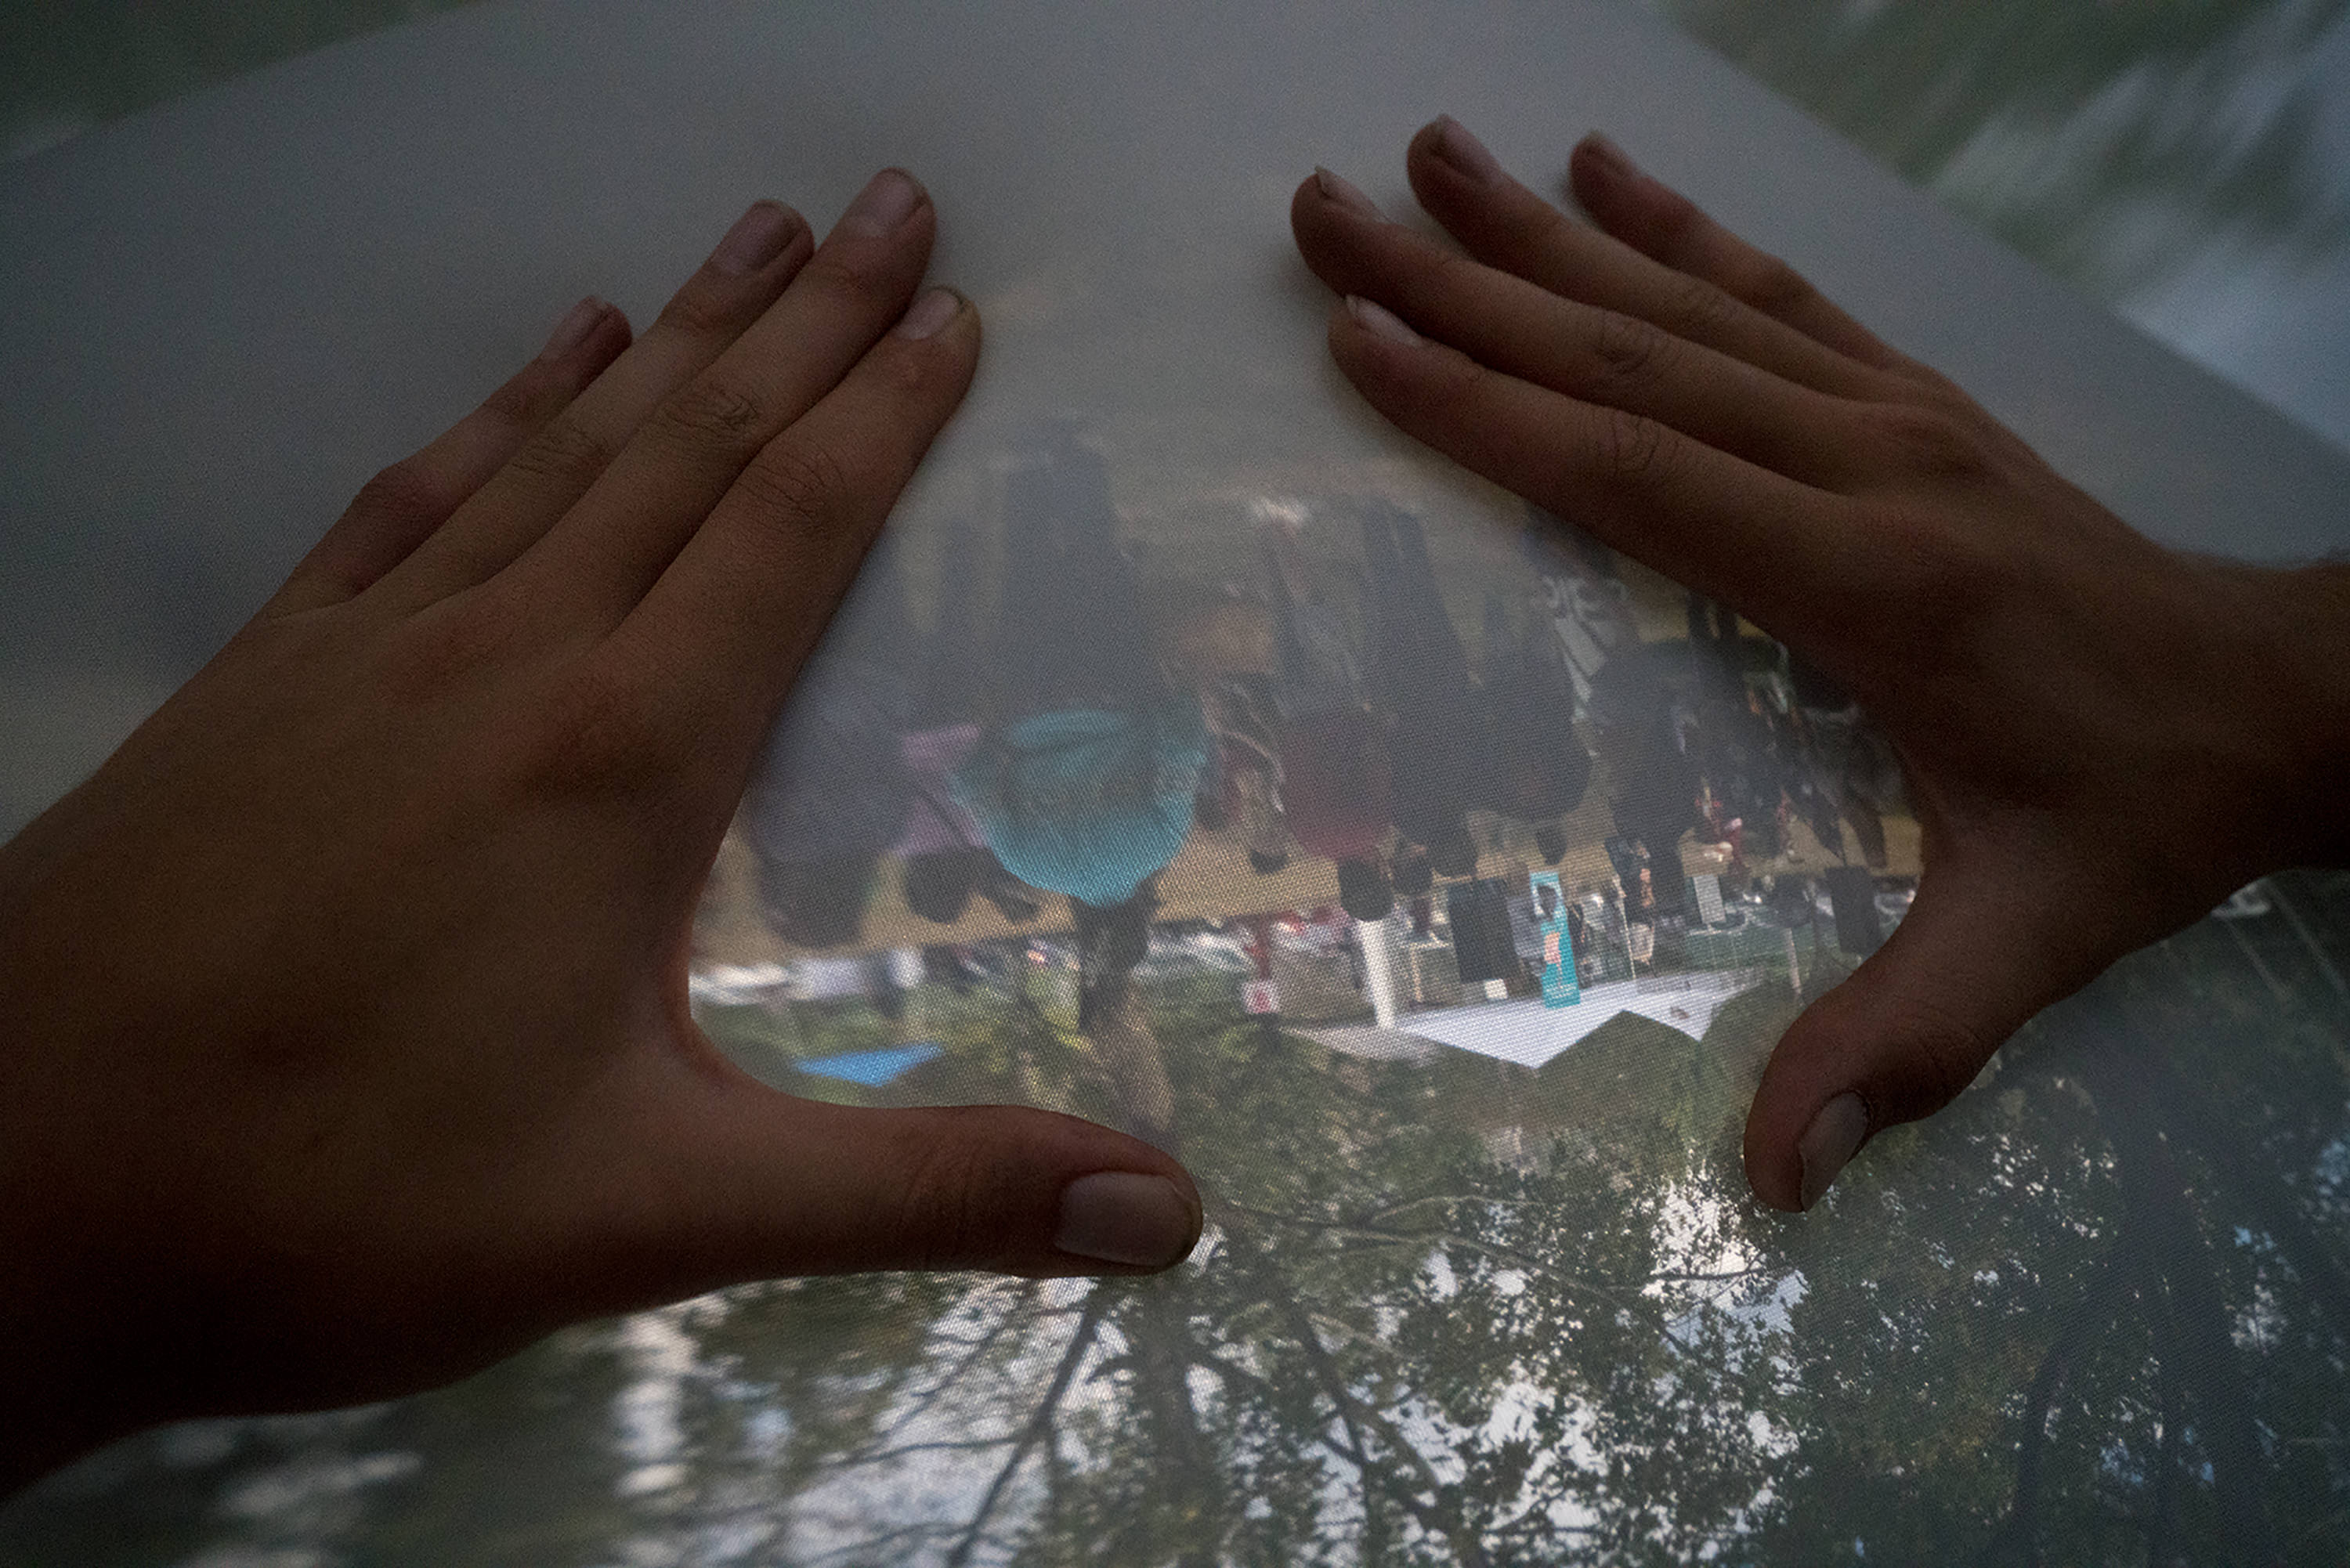 Guests can manipulate the surface and play with the properties of light inside the dome.